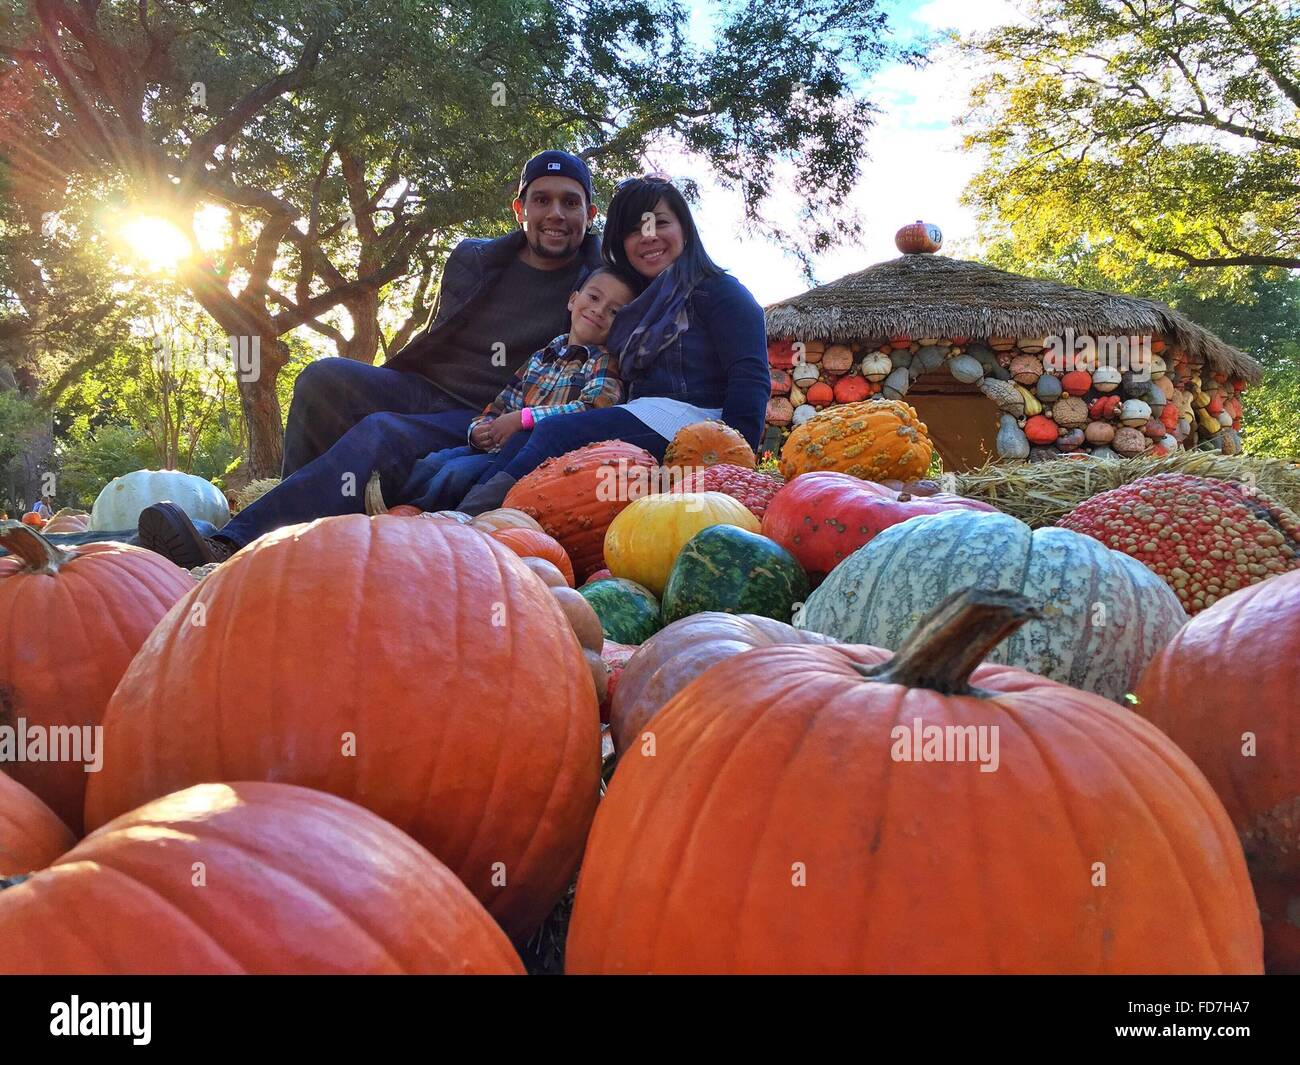 Portrait Of Smiling Family With Pumpkins At Village - Stock Image